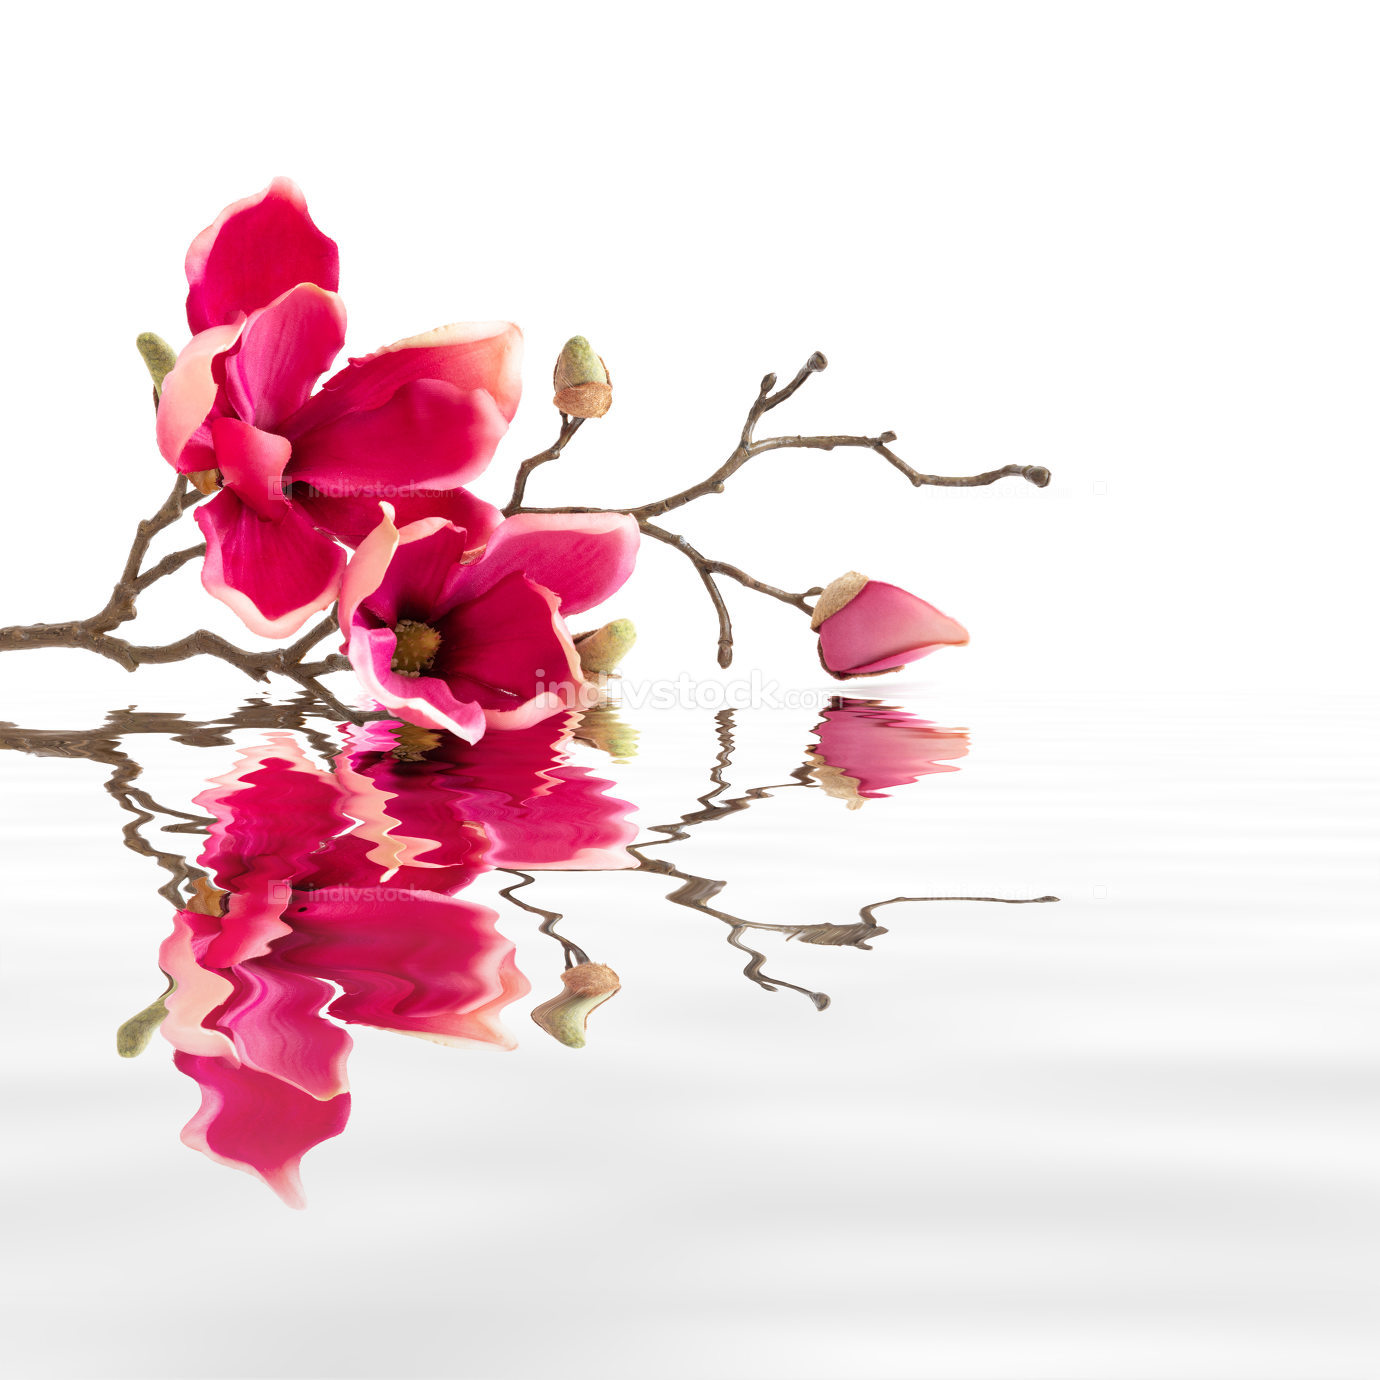 some red magnolia flowers water reflections